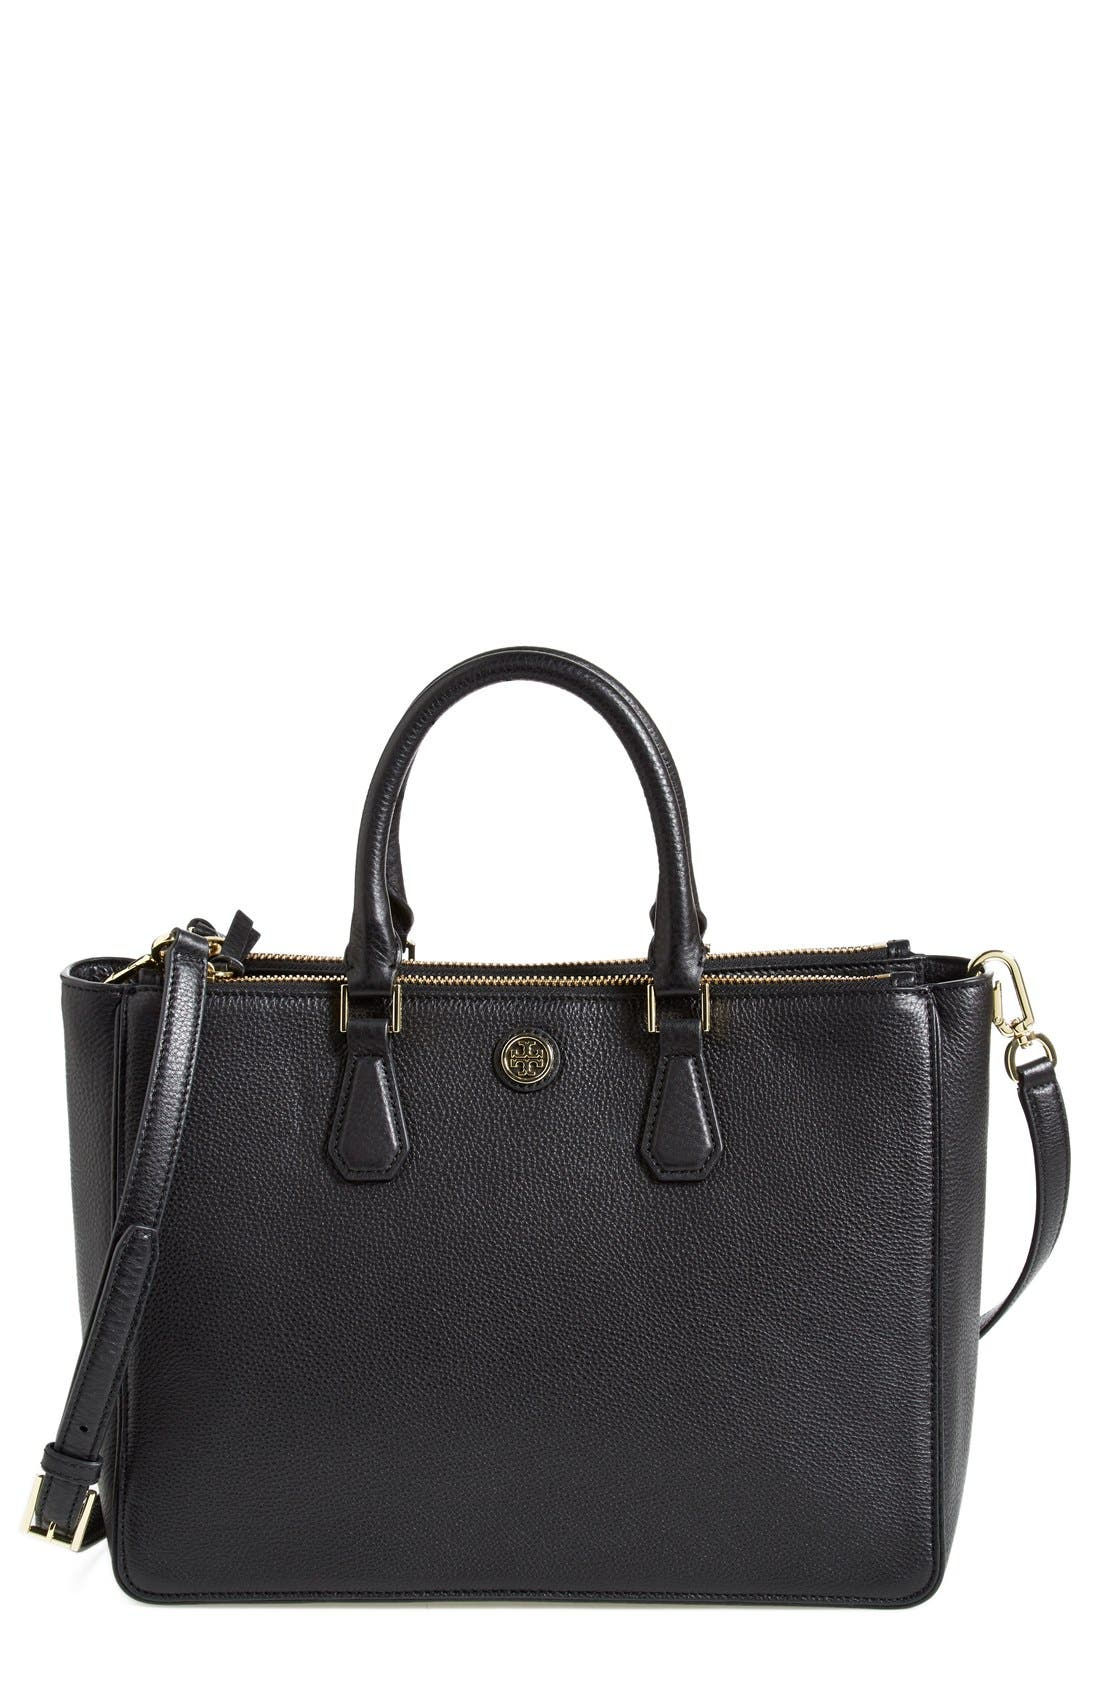 Main Image - Tory Burch 'Robinson' Pebbled Leather Double Zip Tote